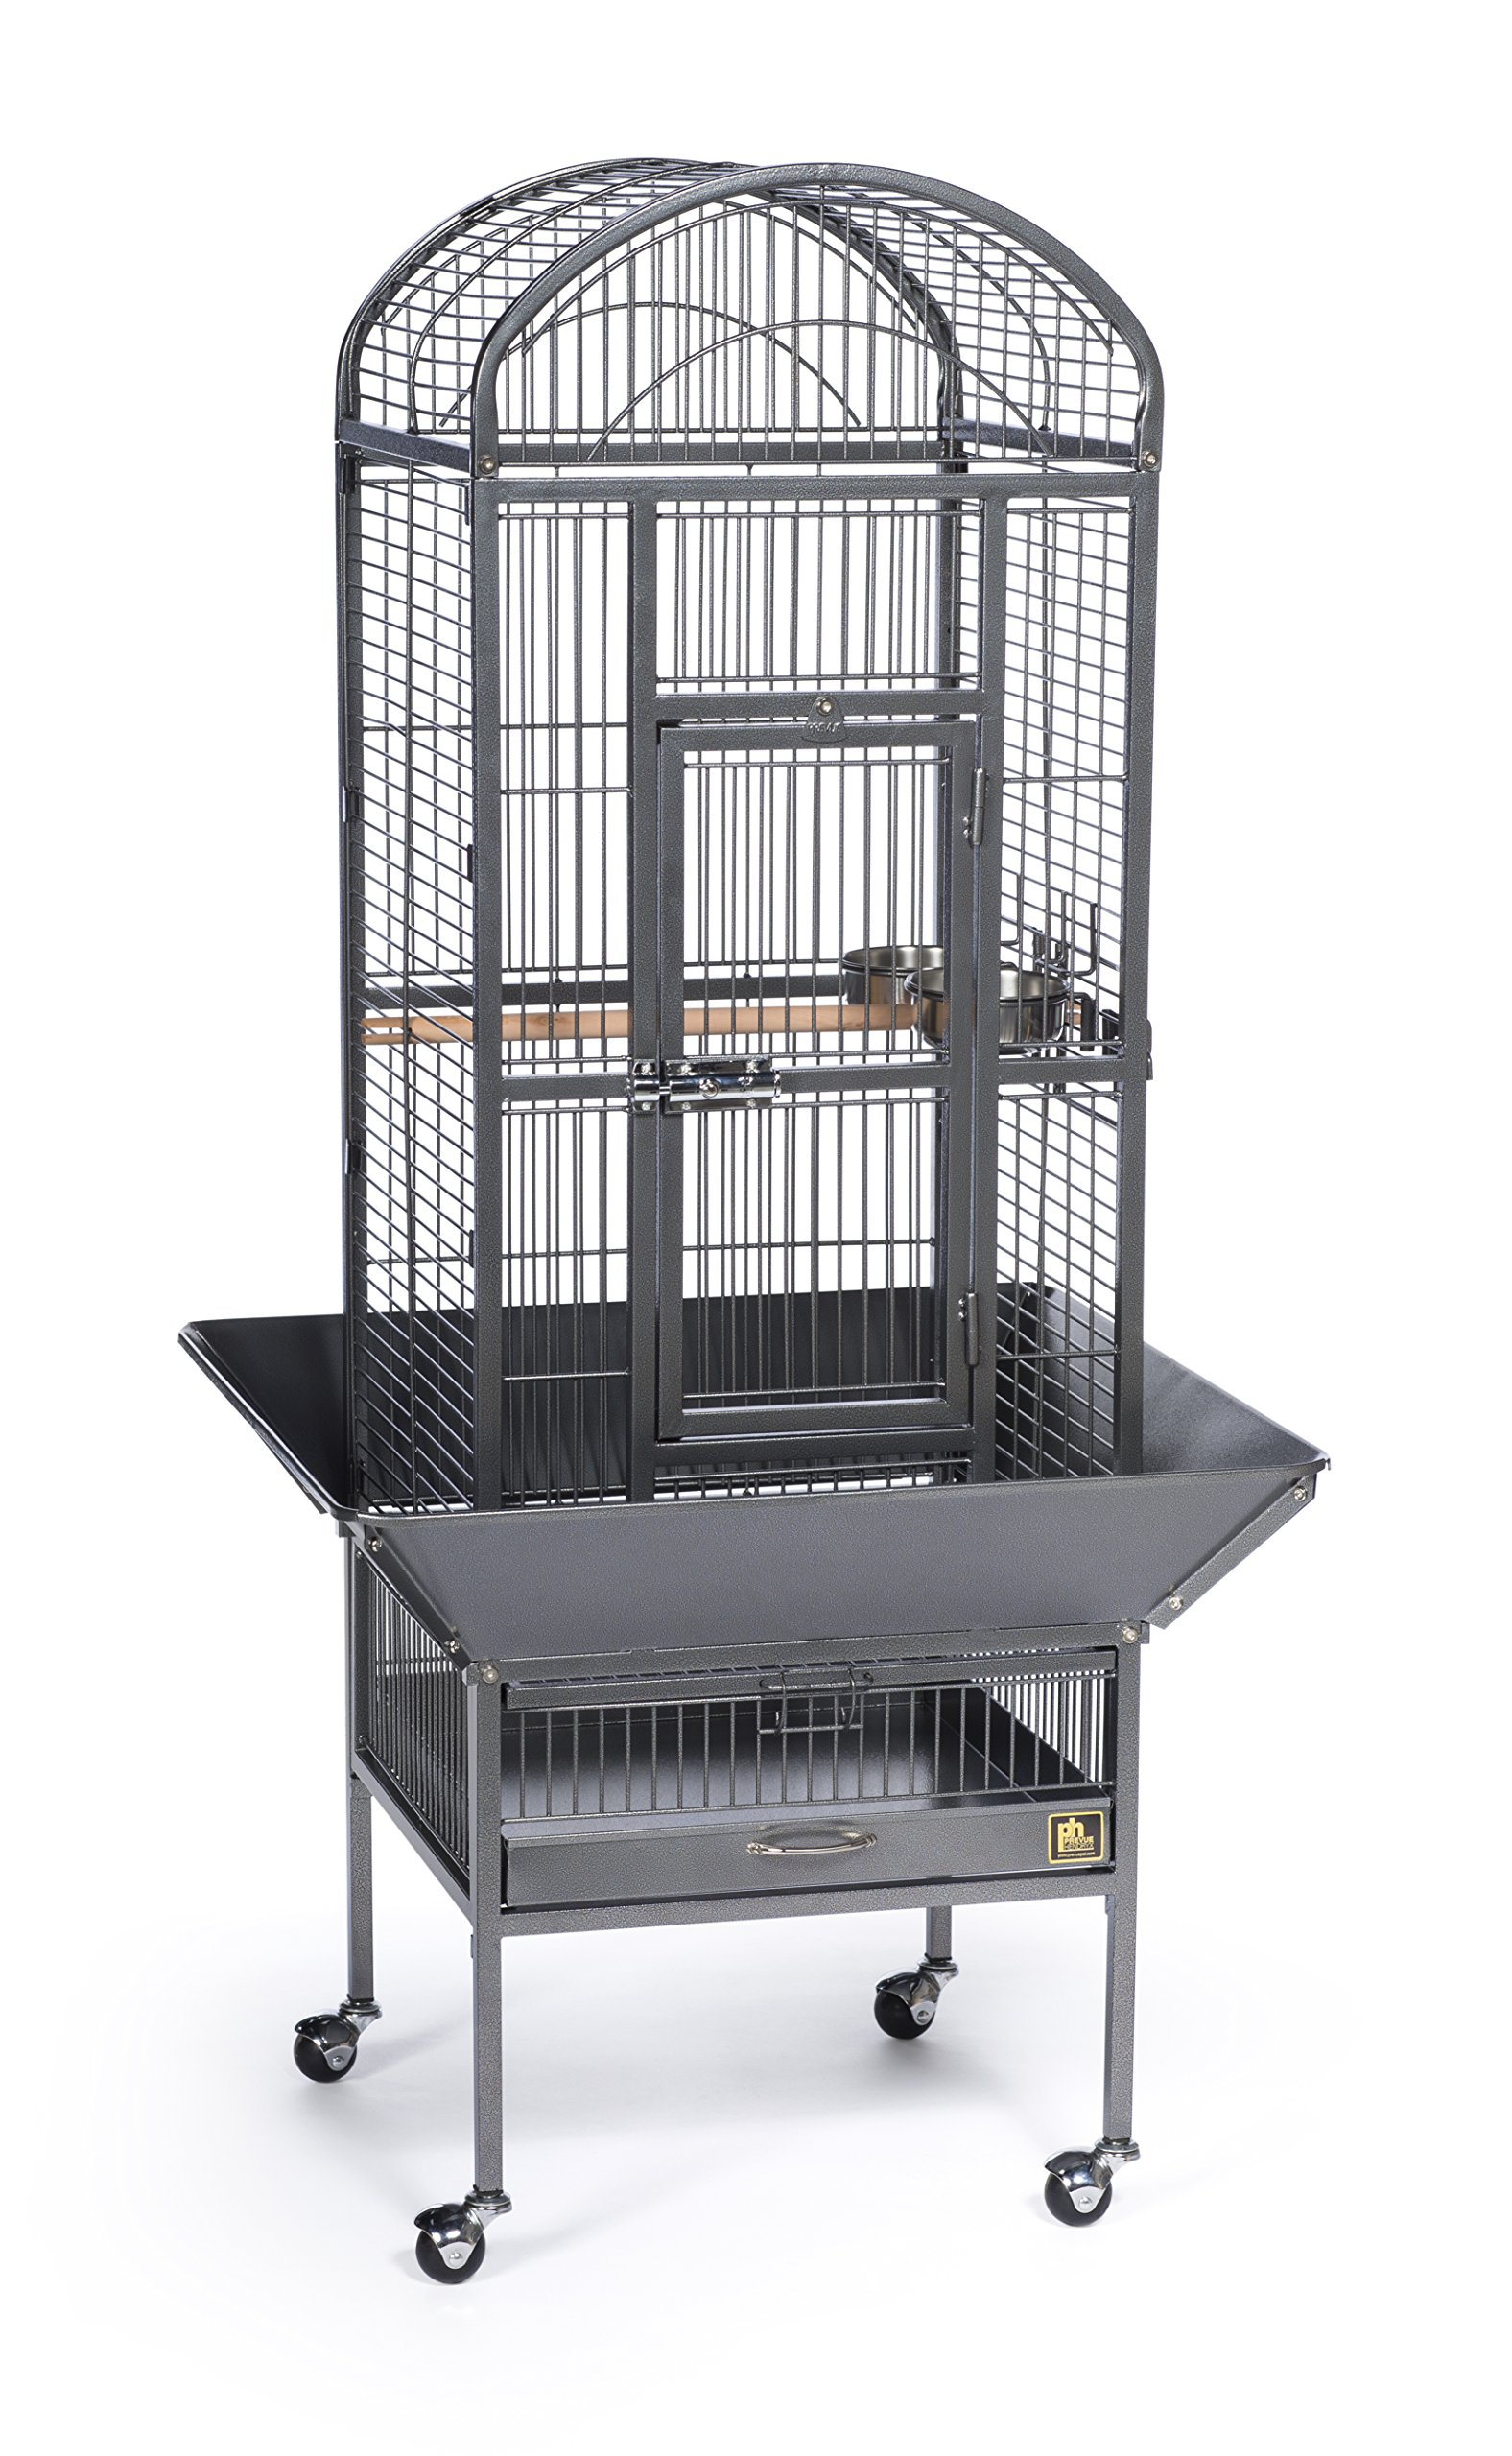 Prevue Pet Products 34511 Dometop Bird Cage, Small, Black Hammertone